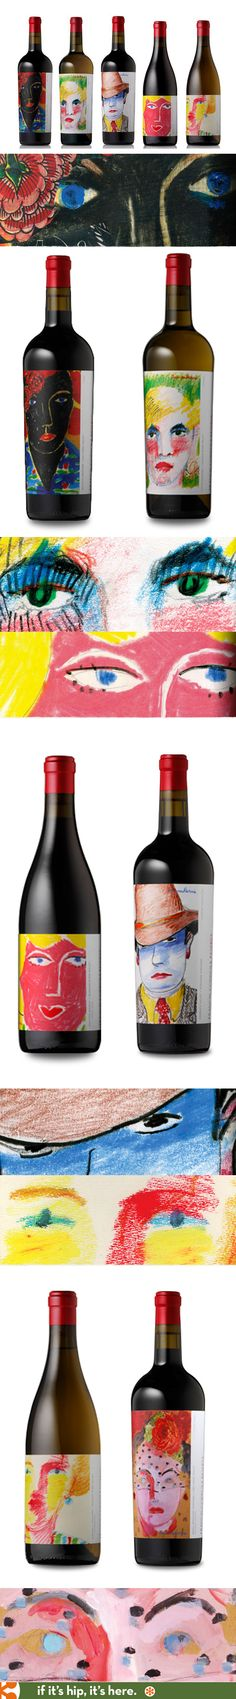 Francis Ford Coppola Limited Edition Reserve Wines with artwork by film production designer Dean Tavoularis on the labels.